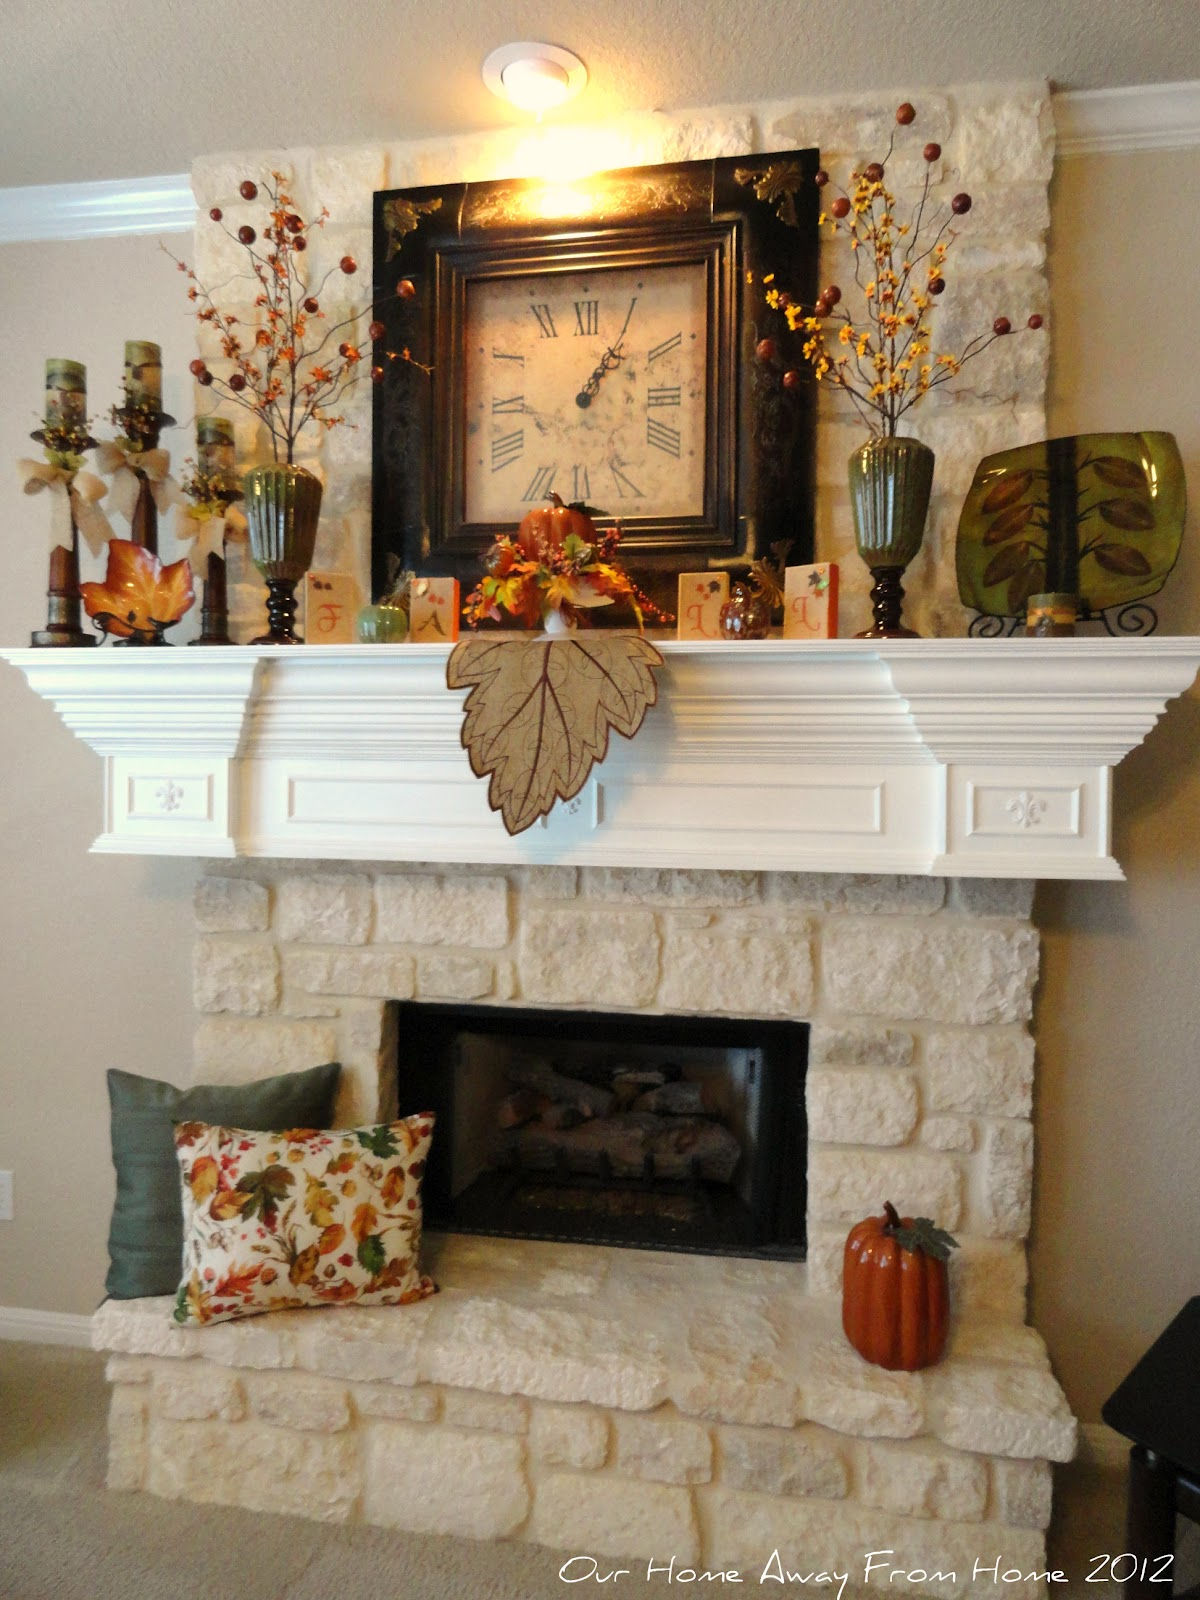 Our home away from home our fall mantle 2012 - Decor above fireplace mantel ...